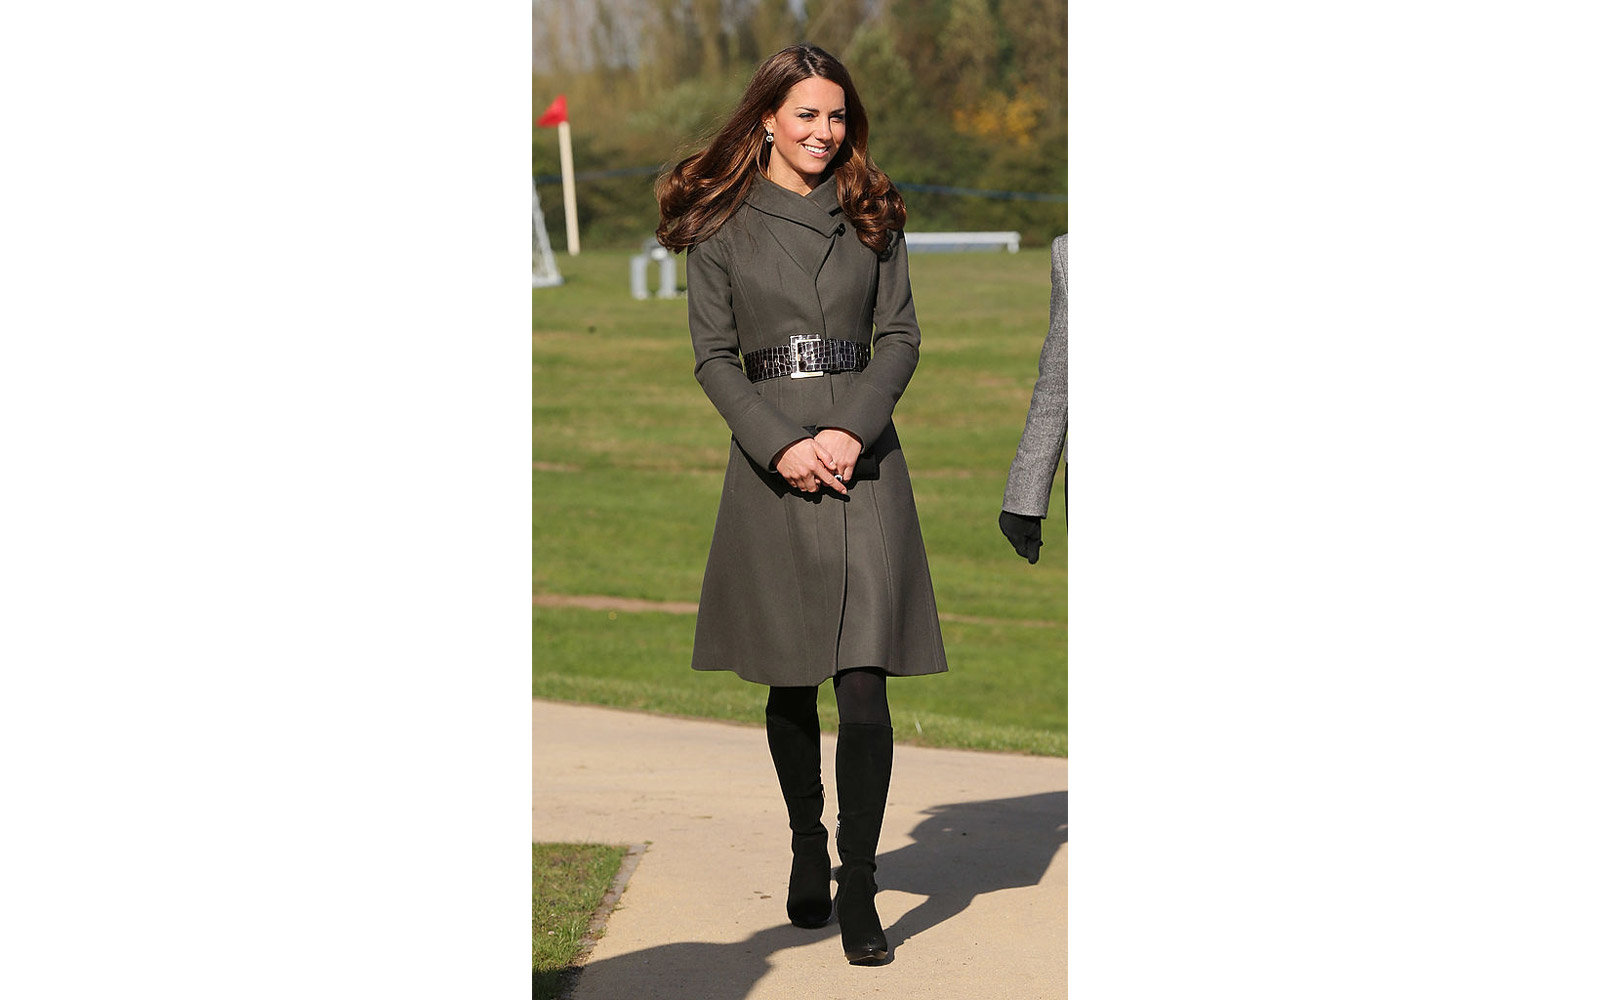 BURTON-UPON-TRENT, ENGLAND - OCTOBER 09:  Catherine, Duchess of Cambridge attends the official launch of The Football Association's National Football Centre at St George's Park on October 9, 2012 in Burton-upon-Trent, England. (Photo by Chris Jackson - Po